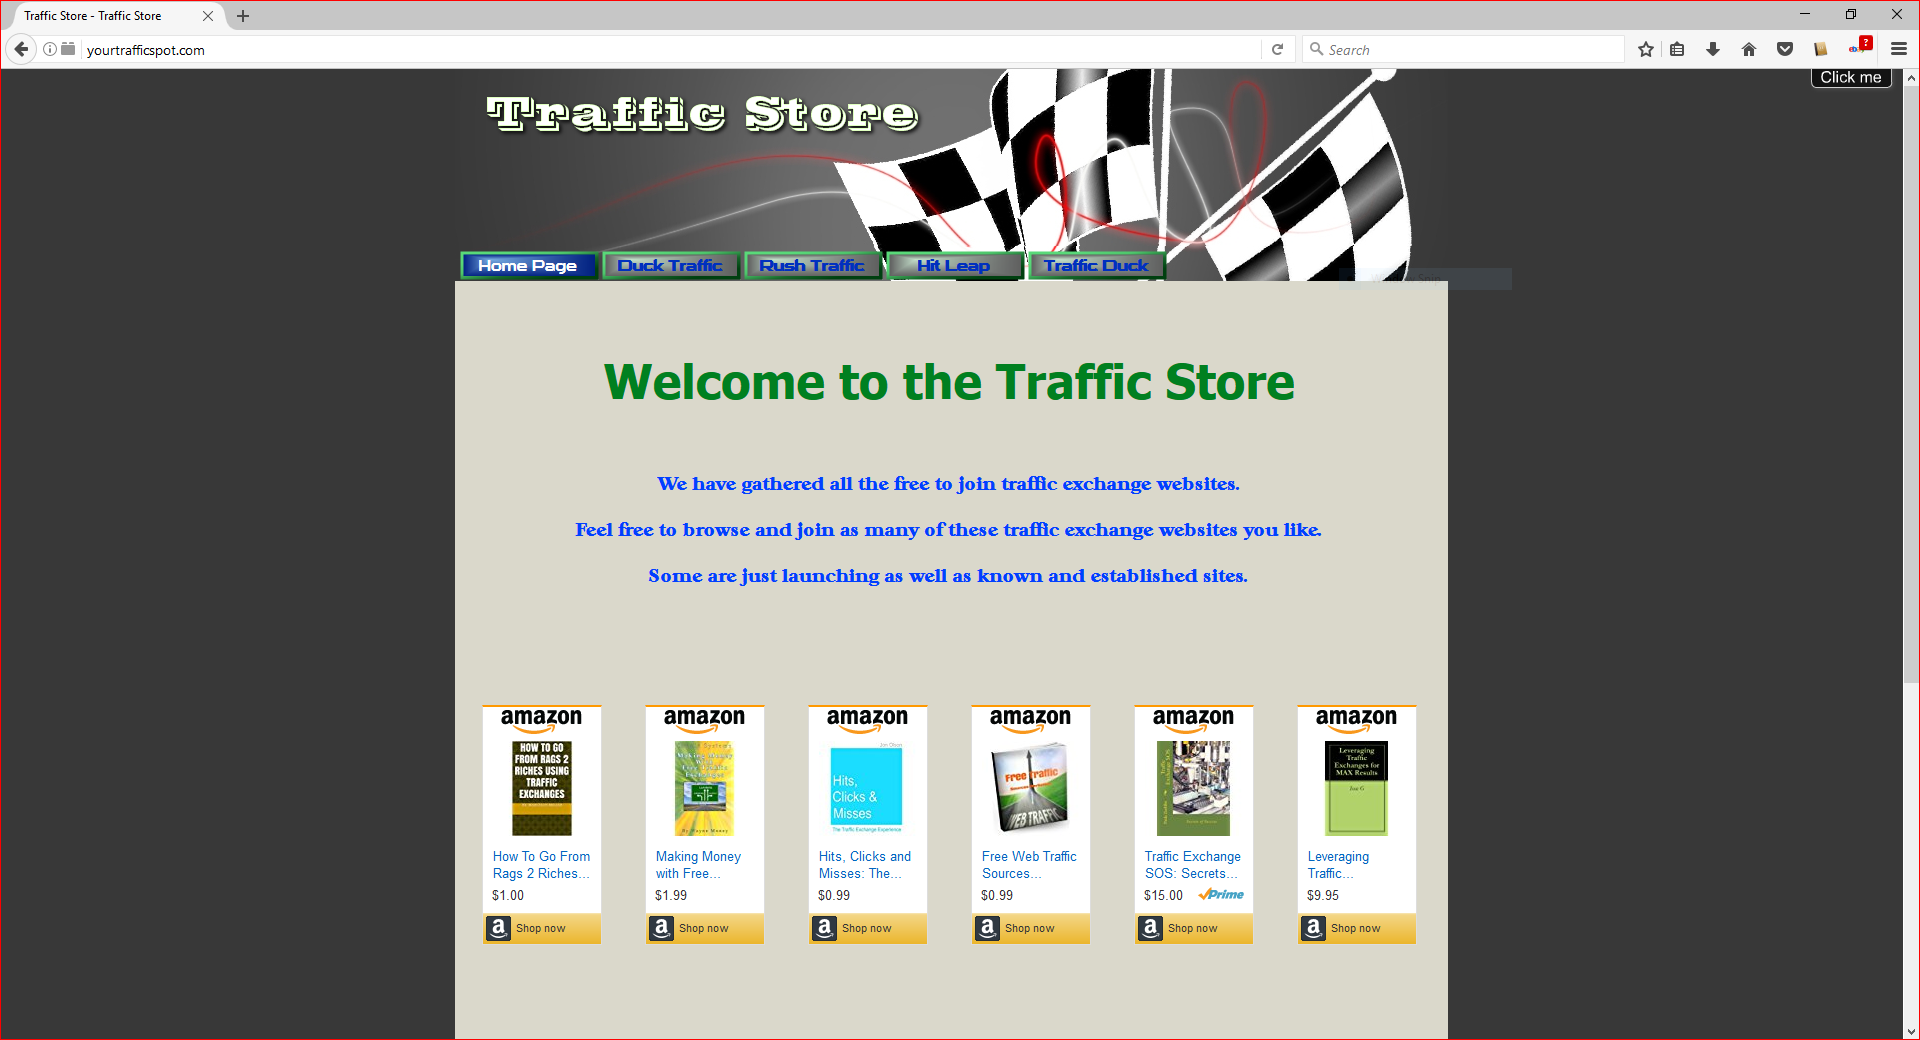 Traffic exchange website partner